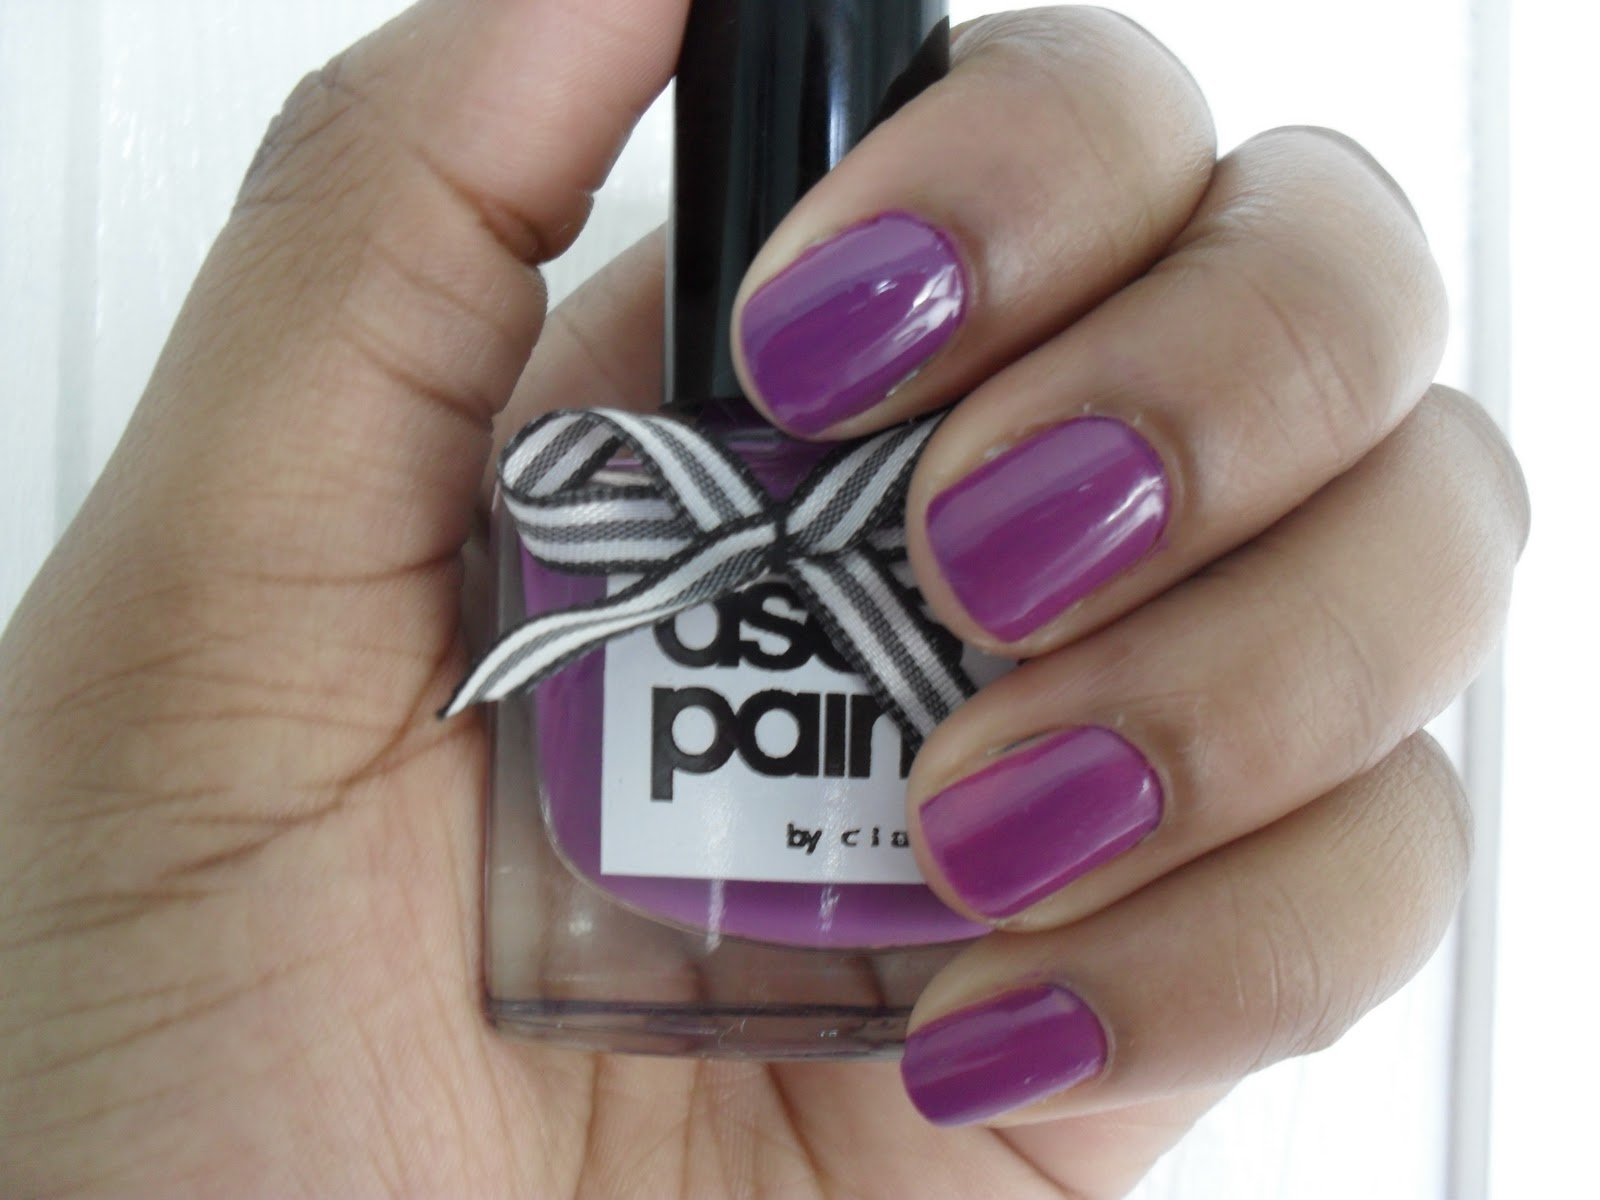 ASOS Paints - Megan | The Student's Guide To Nail Polish